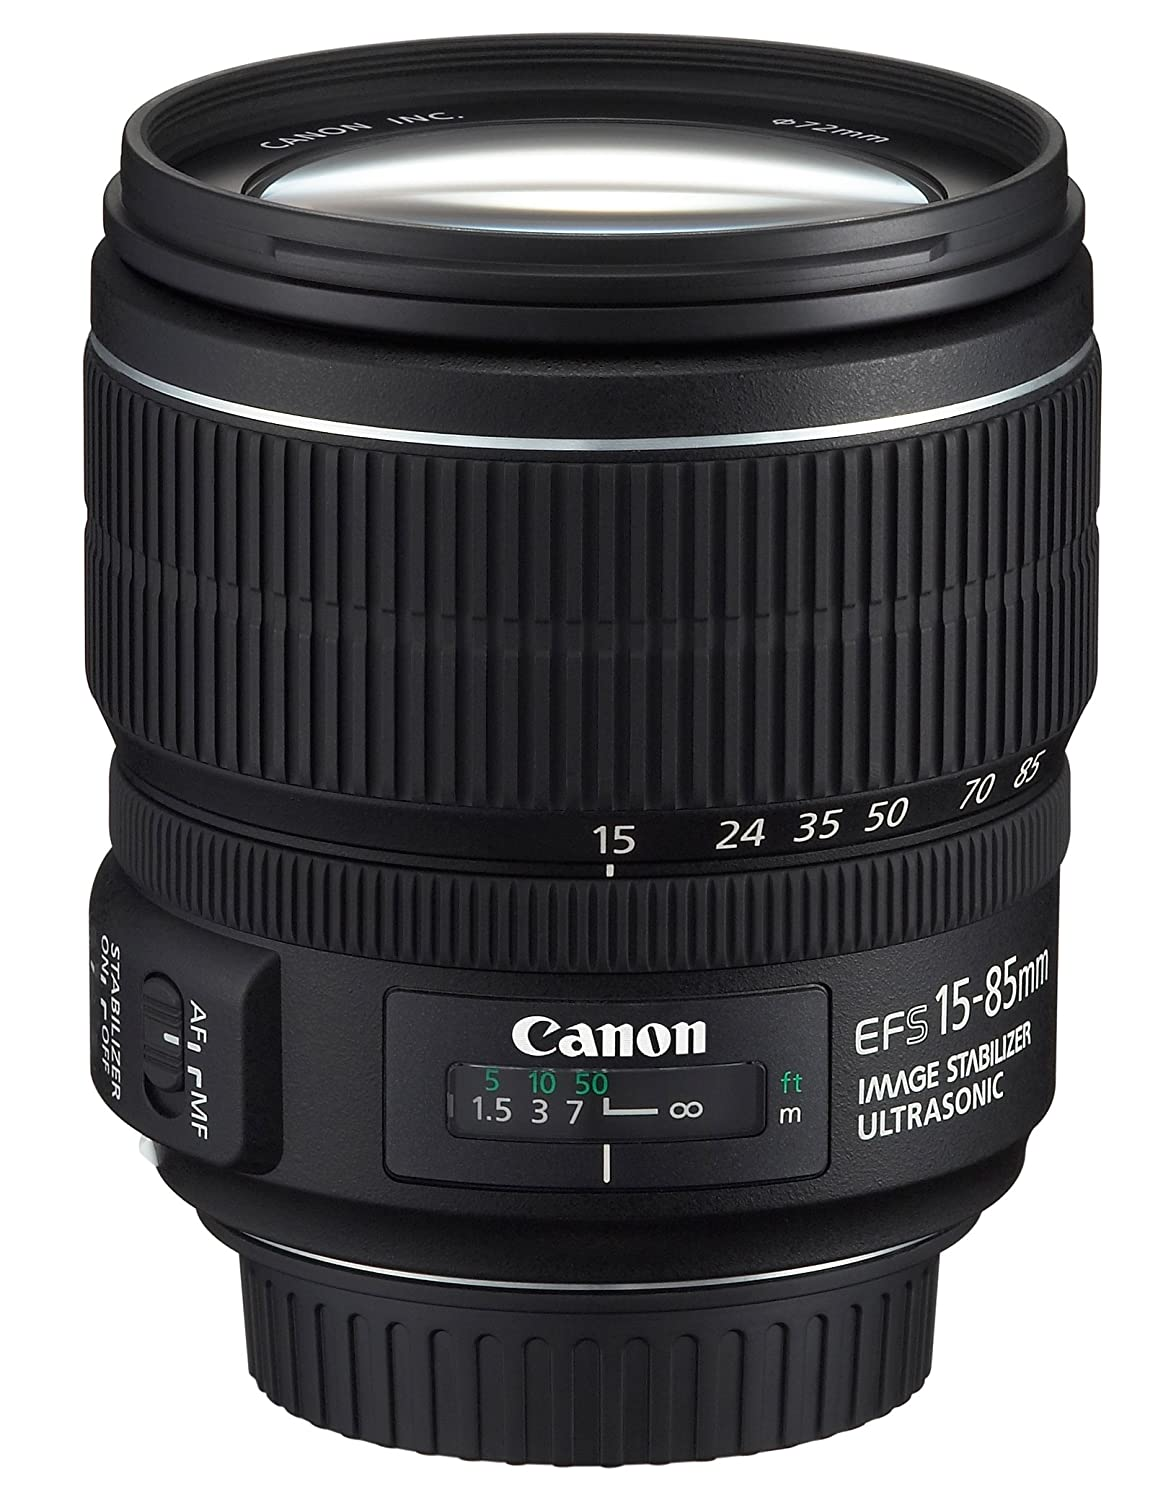 Canon   S IS USM Objetivo para Canon distancia focal mm